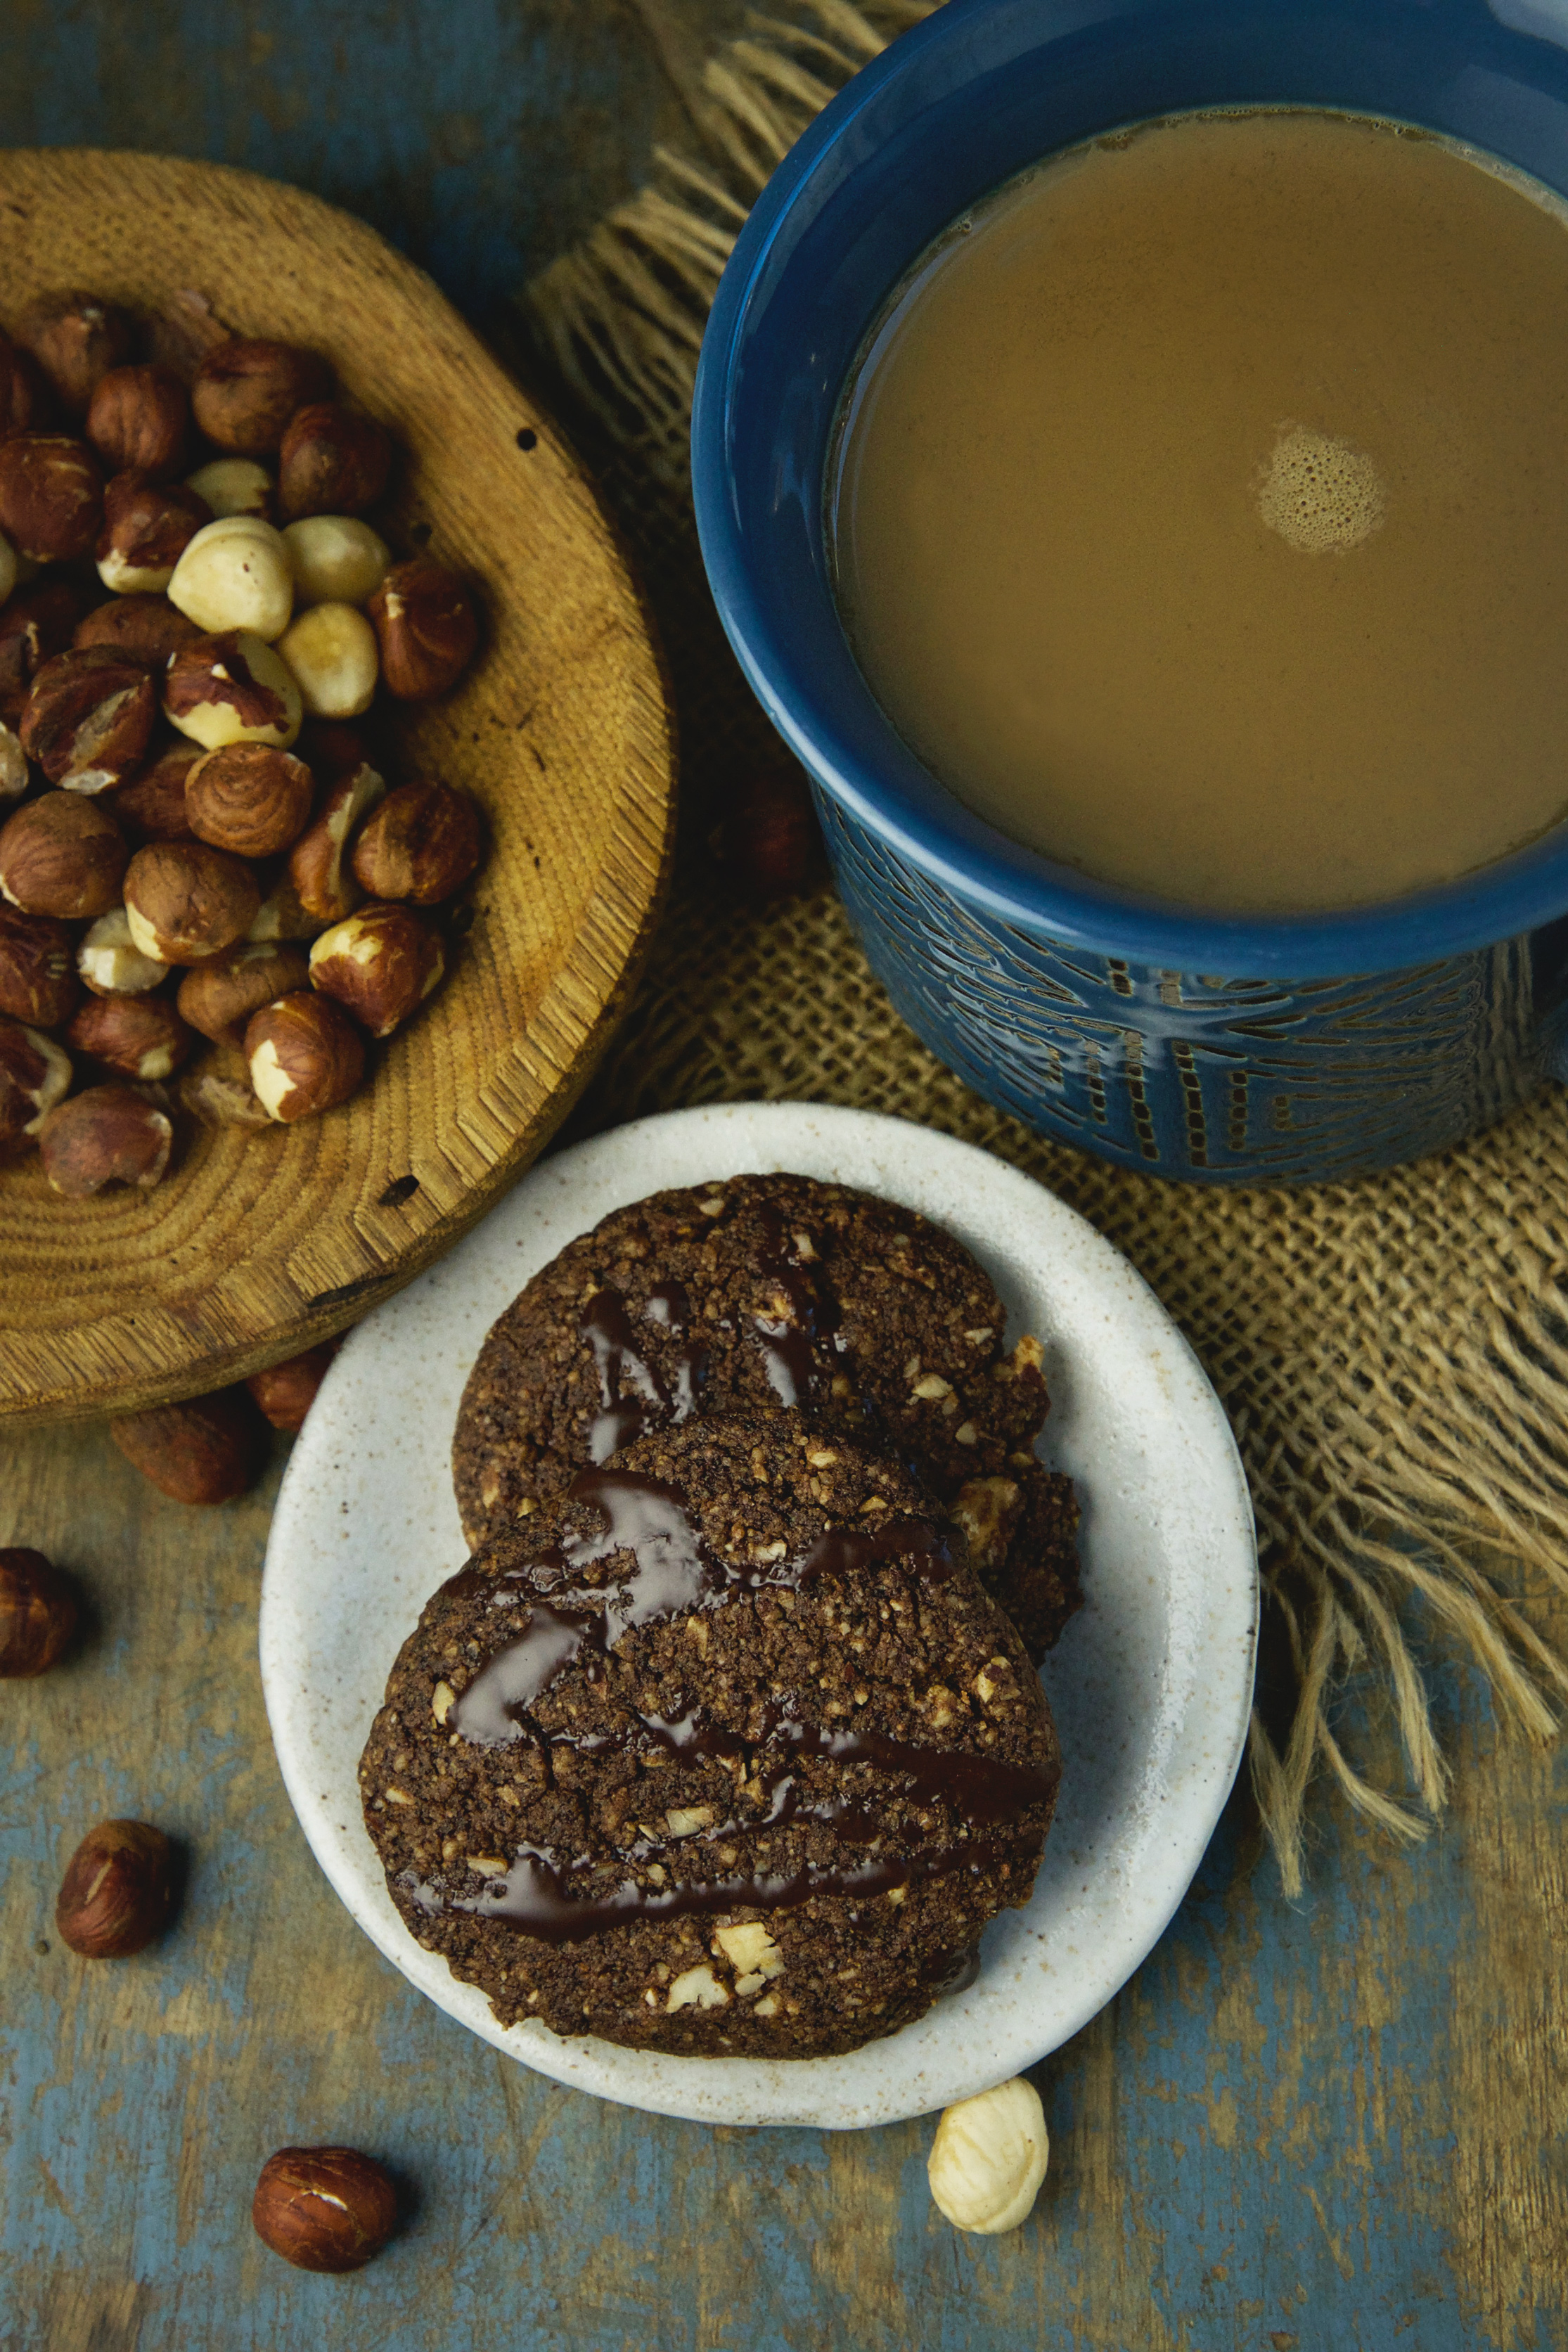 Low-Carb Chocolate Hazelnut Shortbread Cookies - served with a cup of coffee.